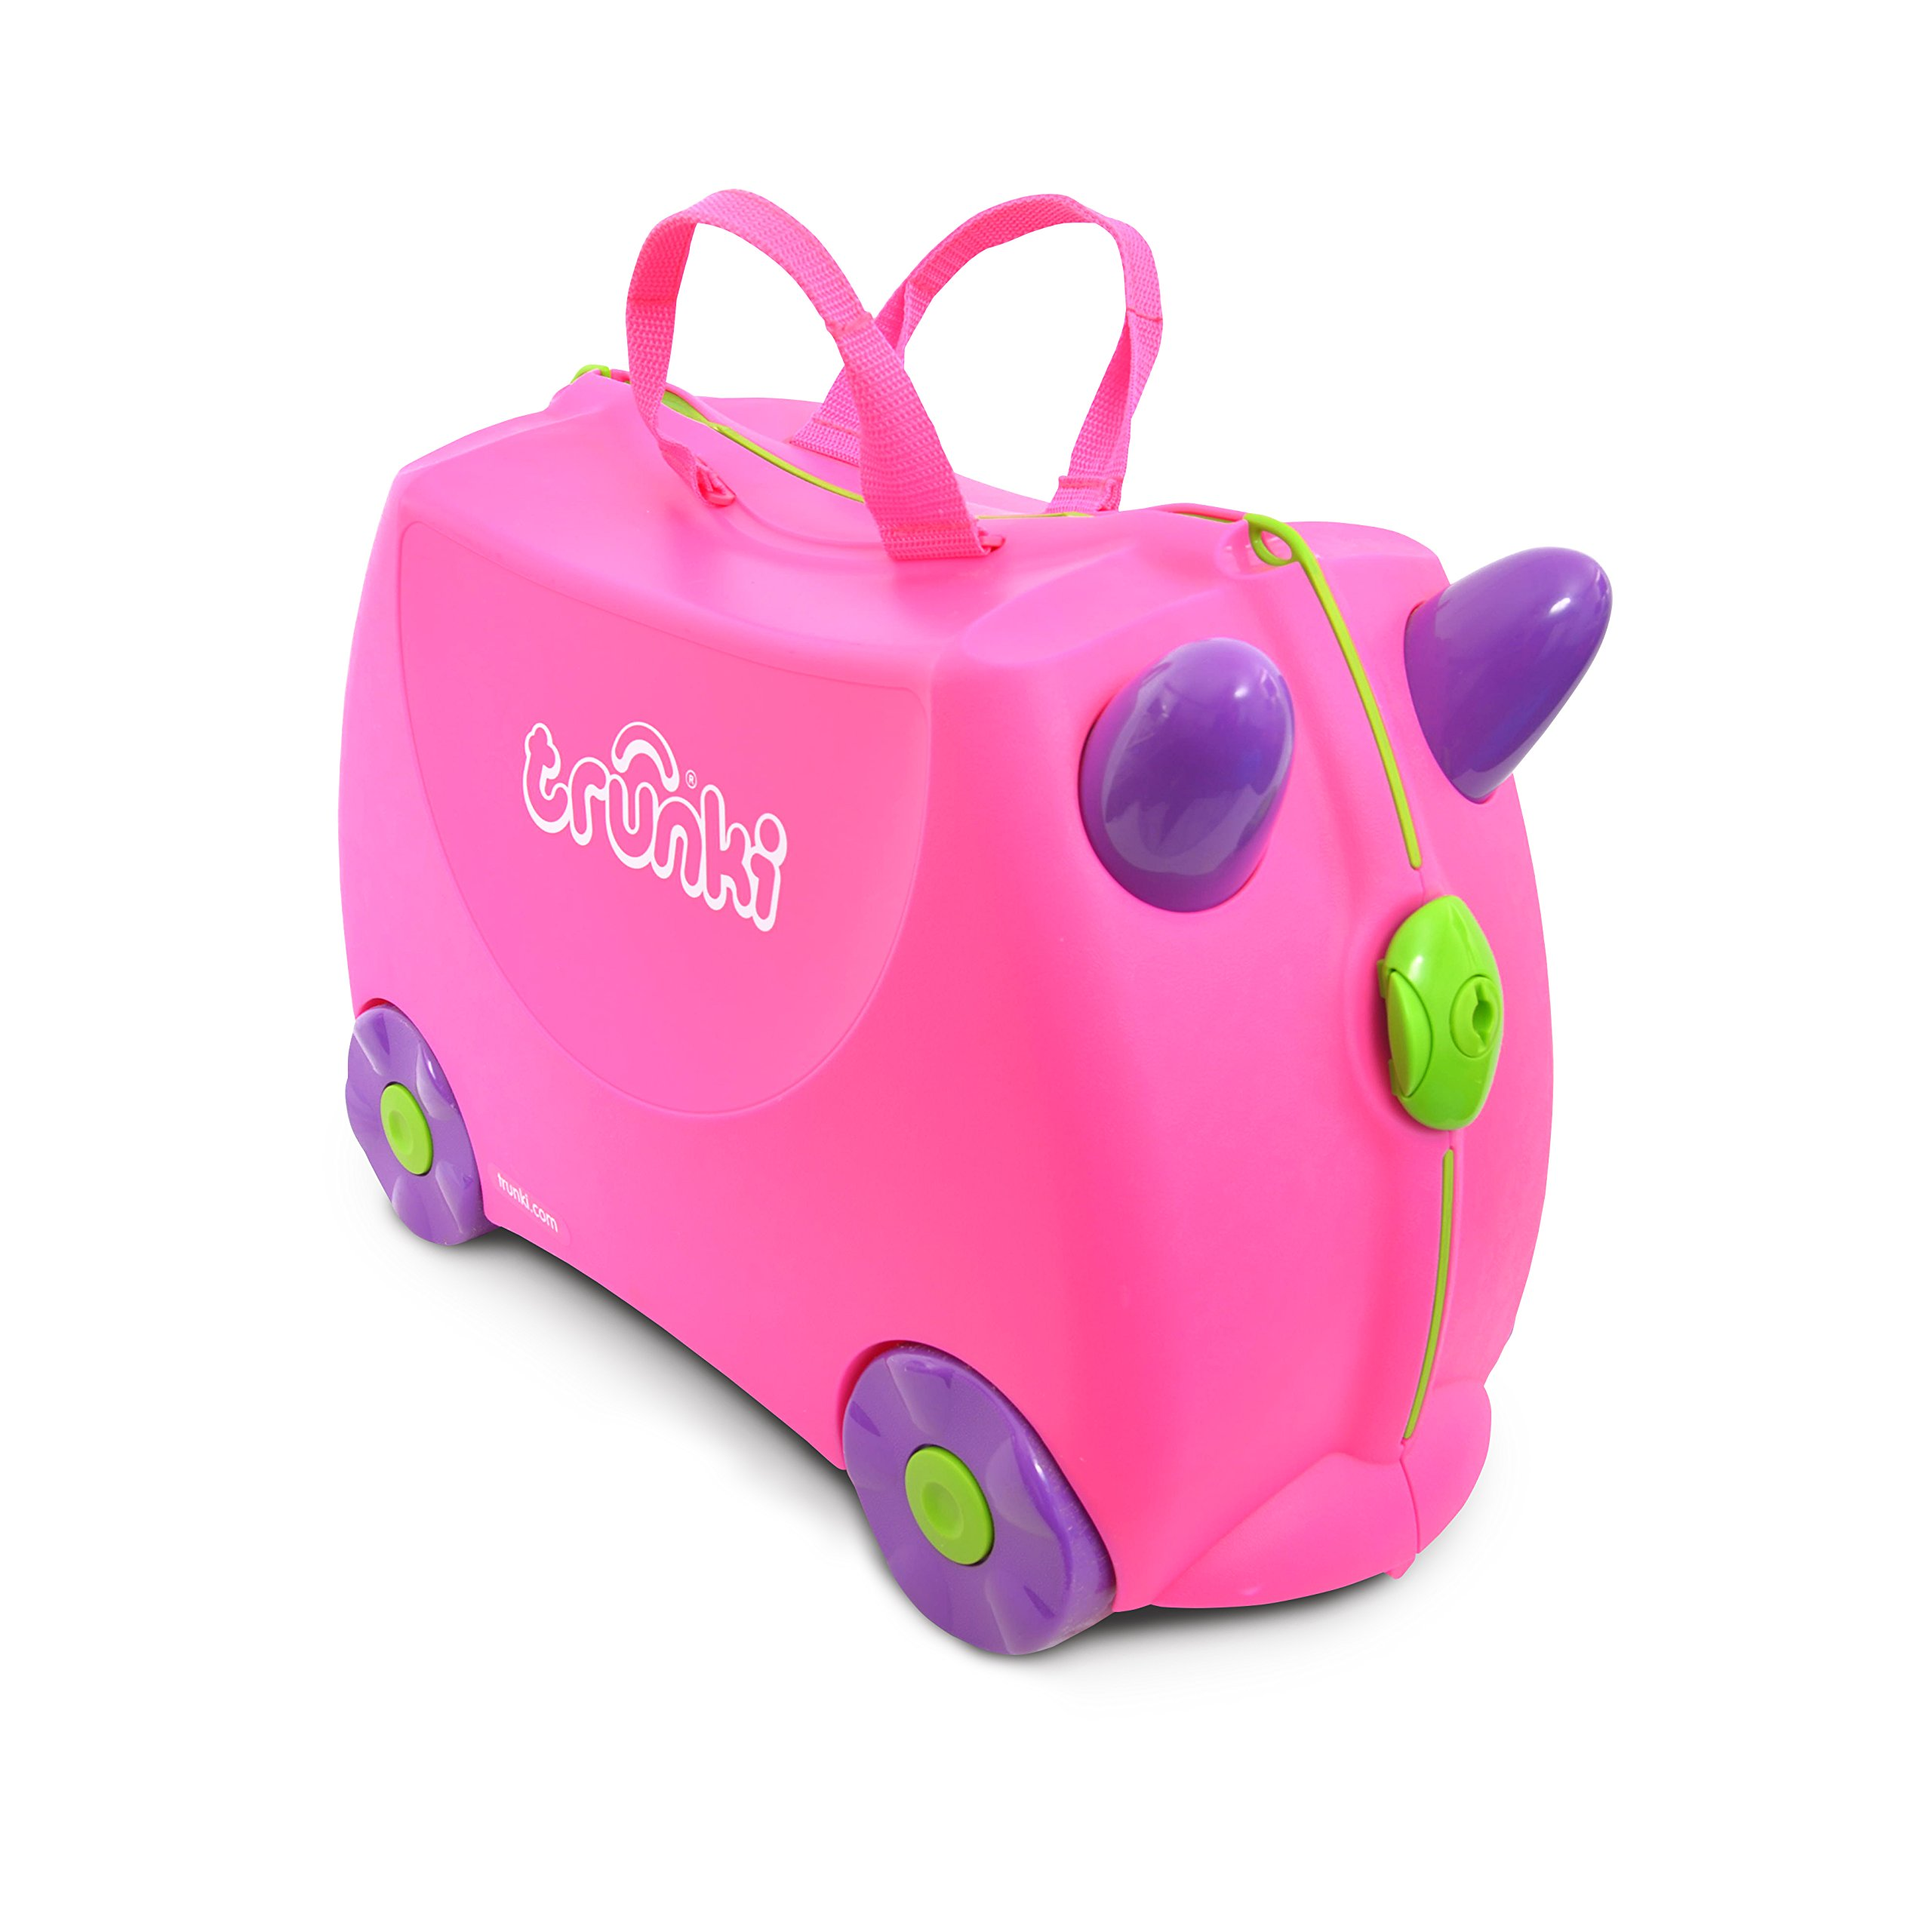 Trunki Original Kids Ride-On Suitcase and Carry-On Luggage - Trixie (Pink